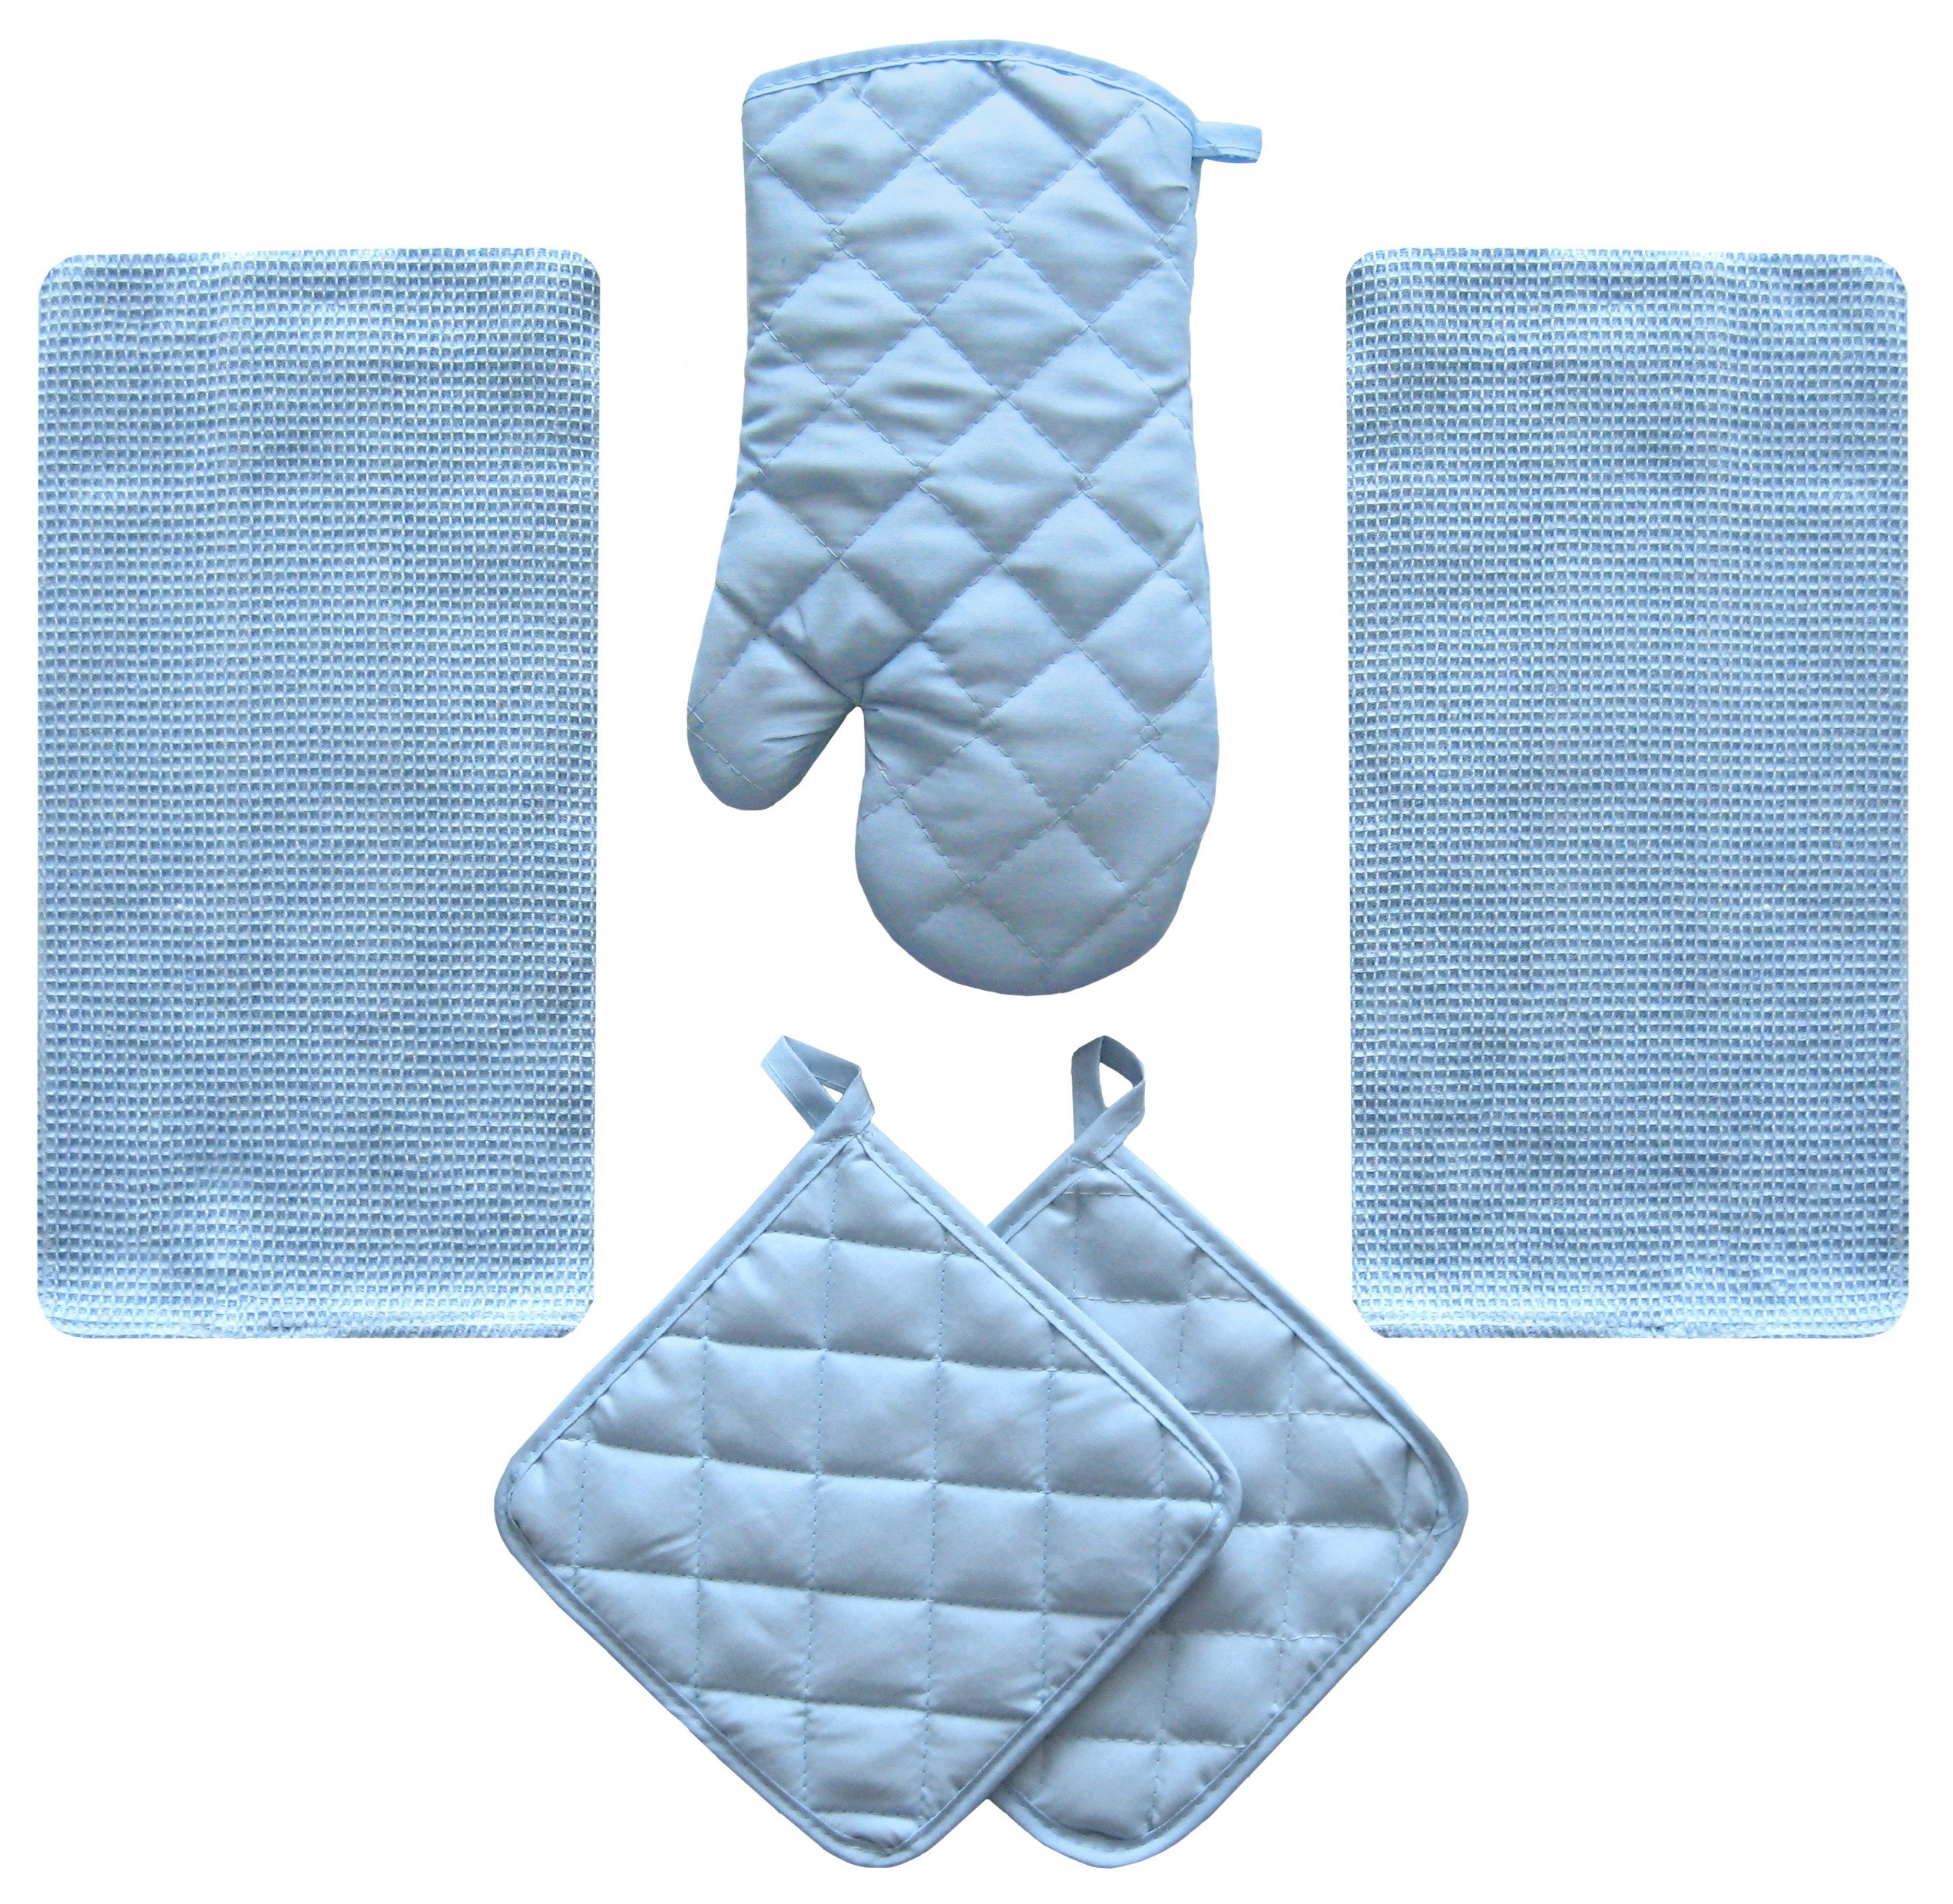 5 Piece Sky Blue Kitchen Linen Towel Set Solid Colors Heavy Weight Cotton With Potholder Oven Mitt